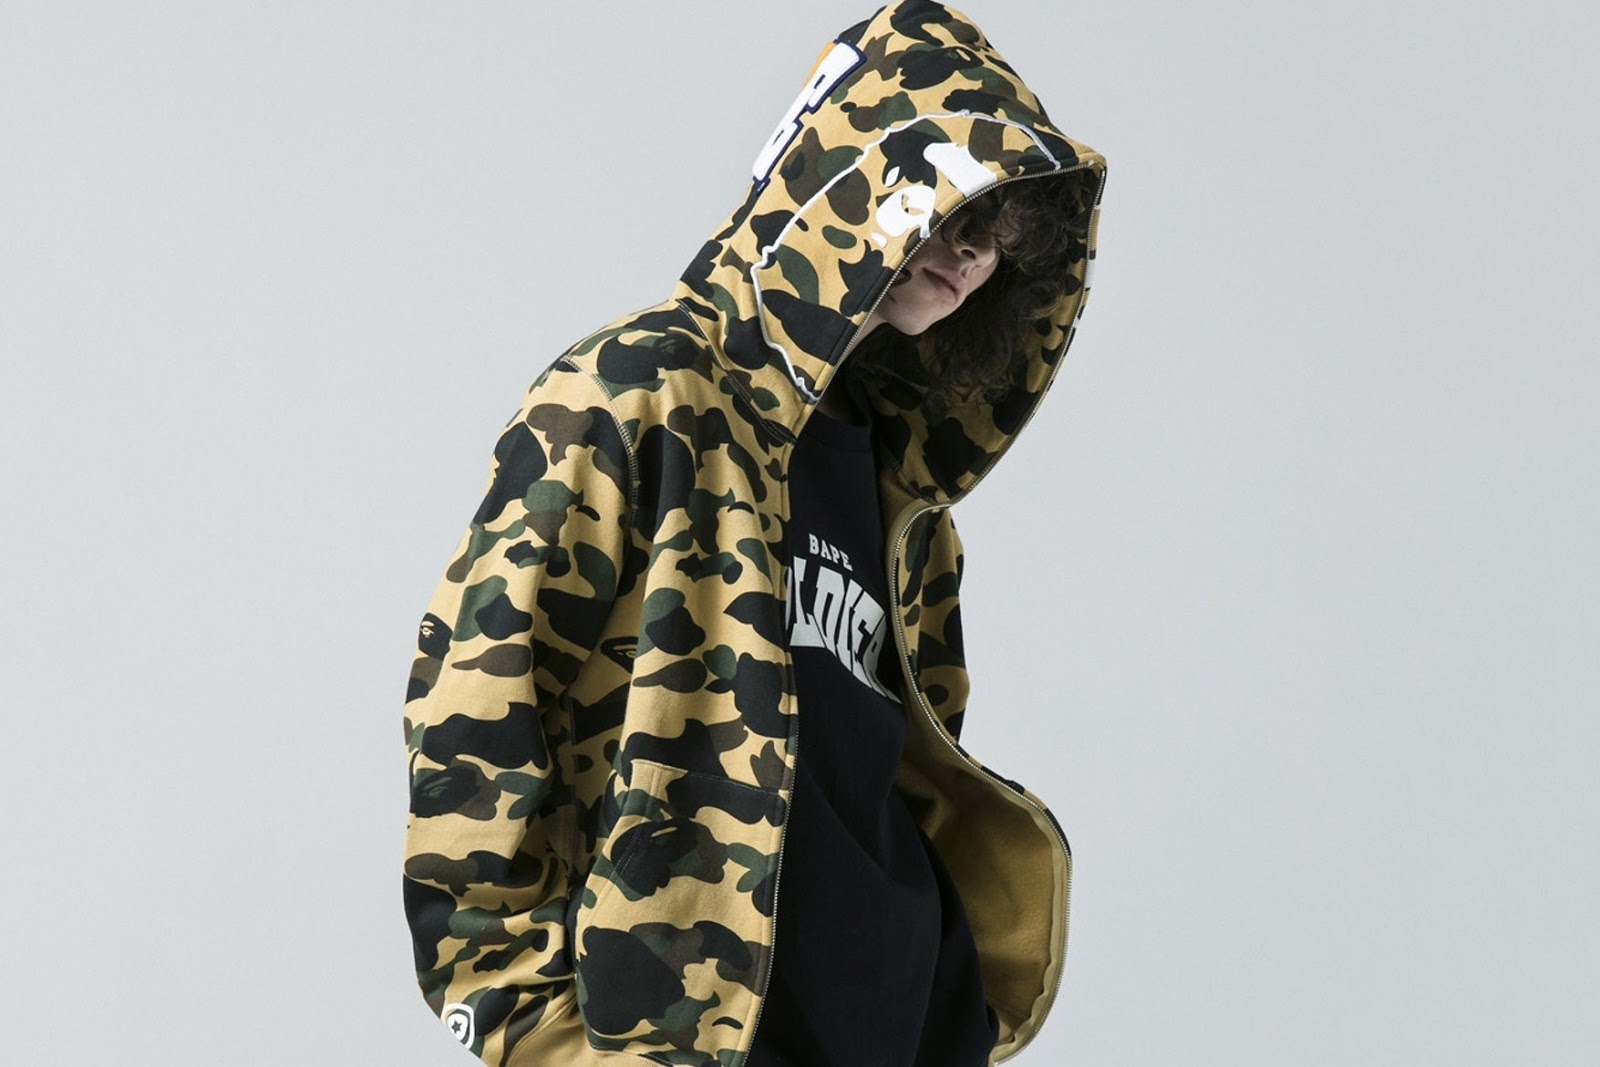 9f1ab0c0 The online auction giant is set to purvey cheap bape outlet both men's and  women's seasonal lines alongside special collaborations for the aforesaid  labels.